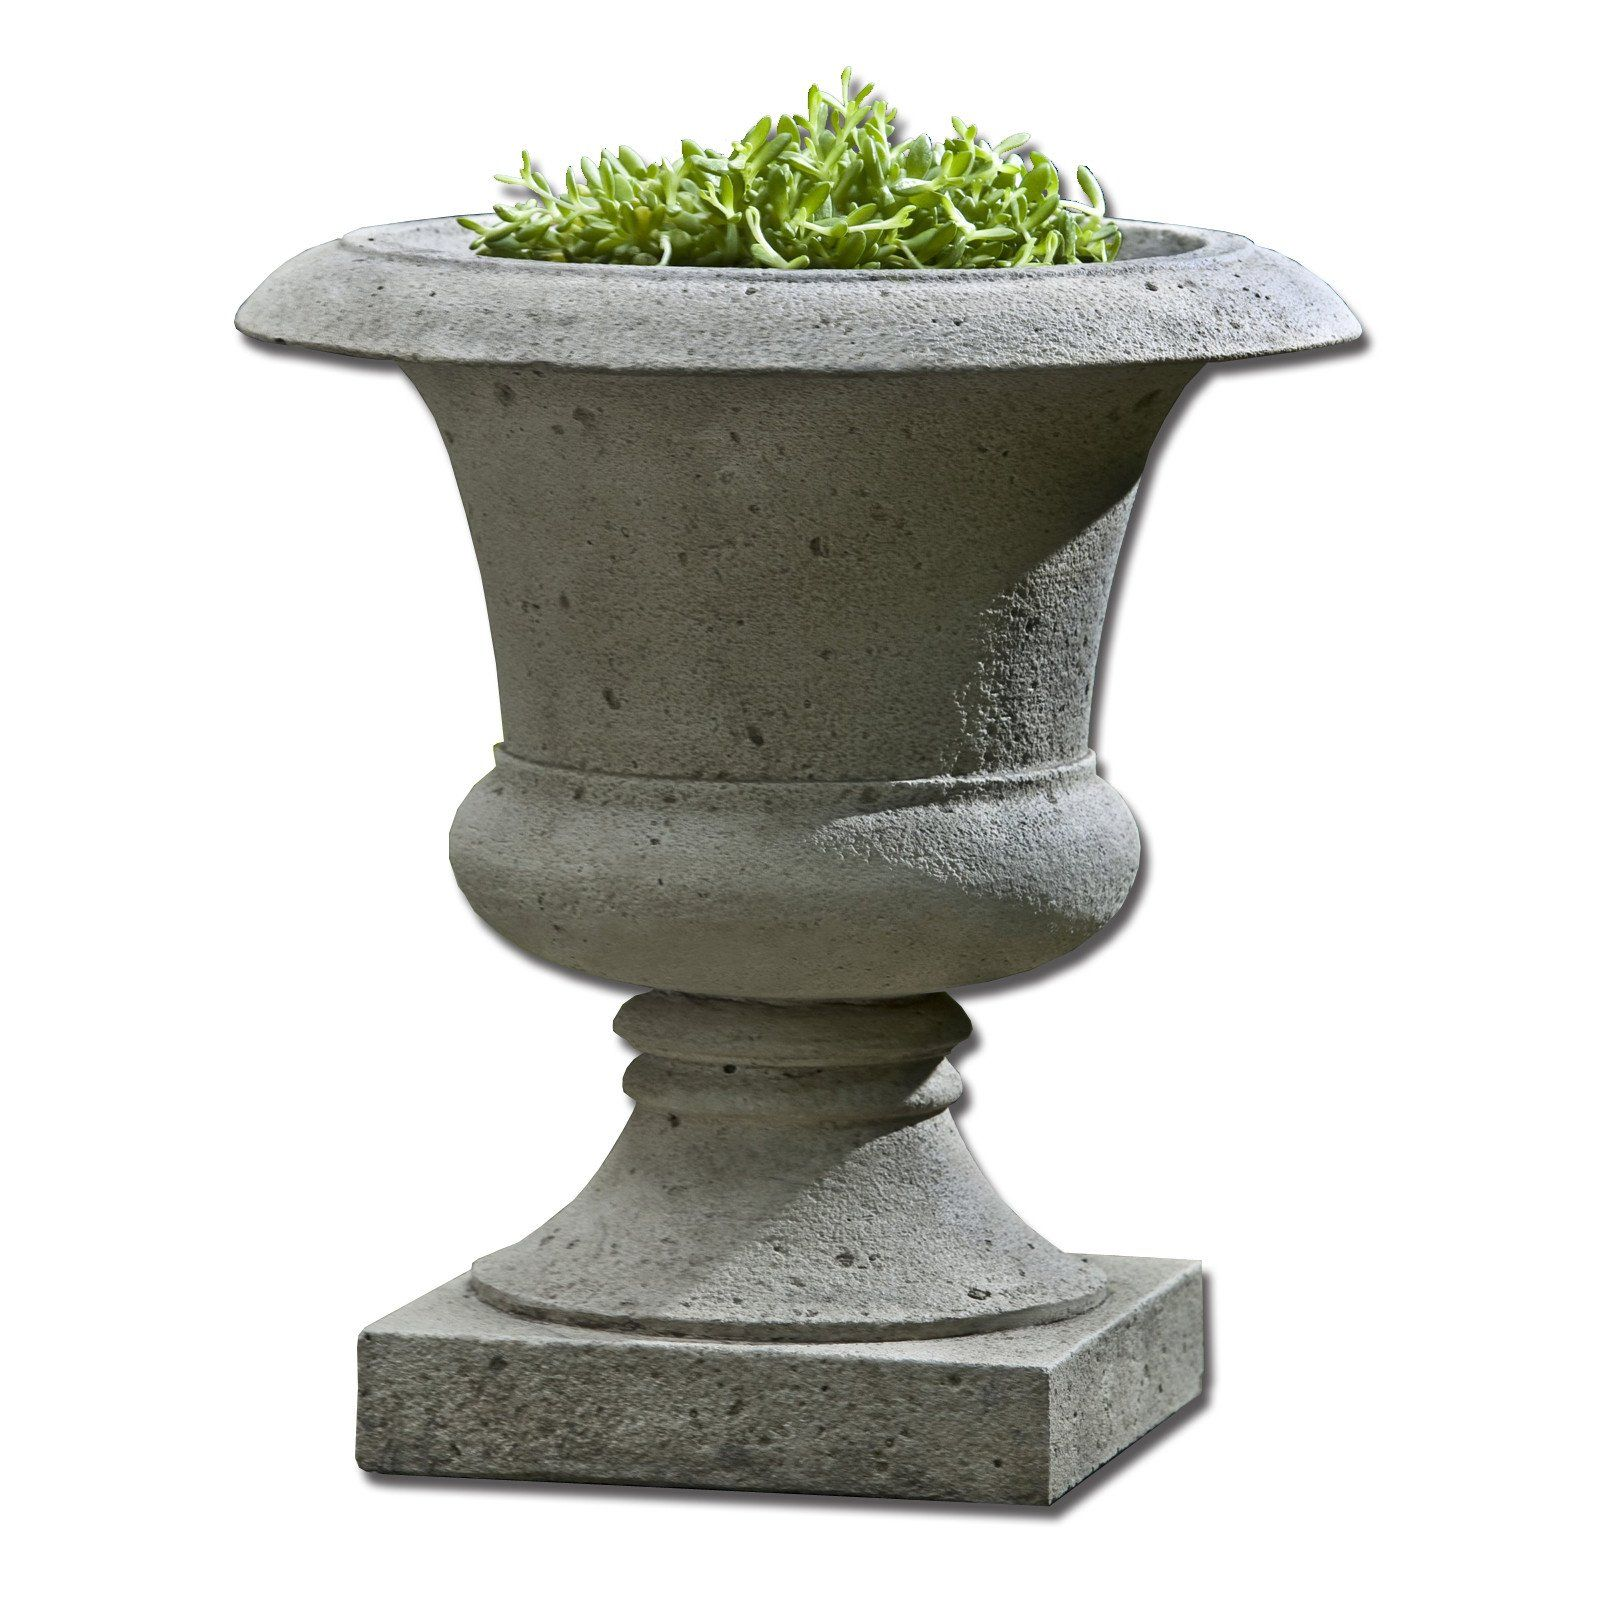 knockoff on diy rich planter and planters lessliving living outdoor less urns thrifty